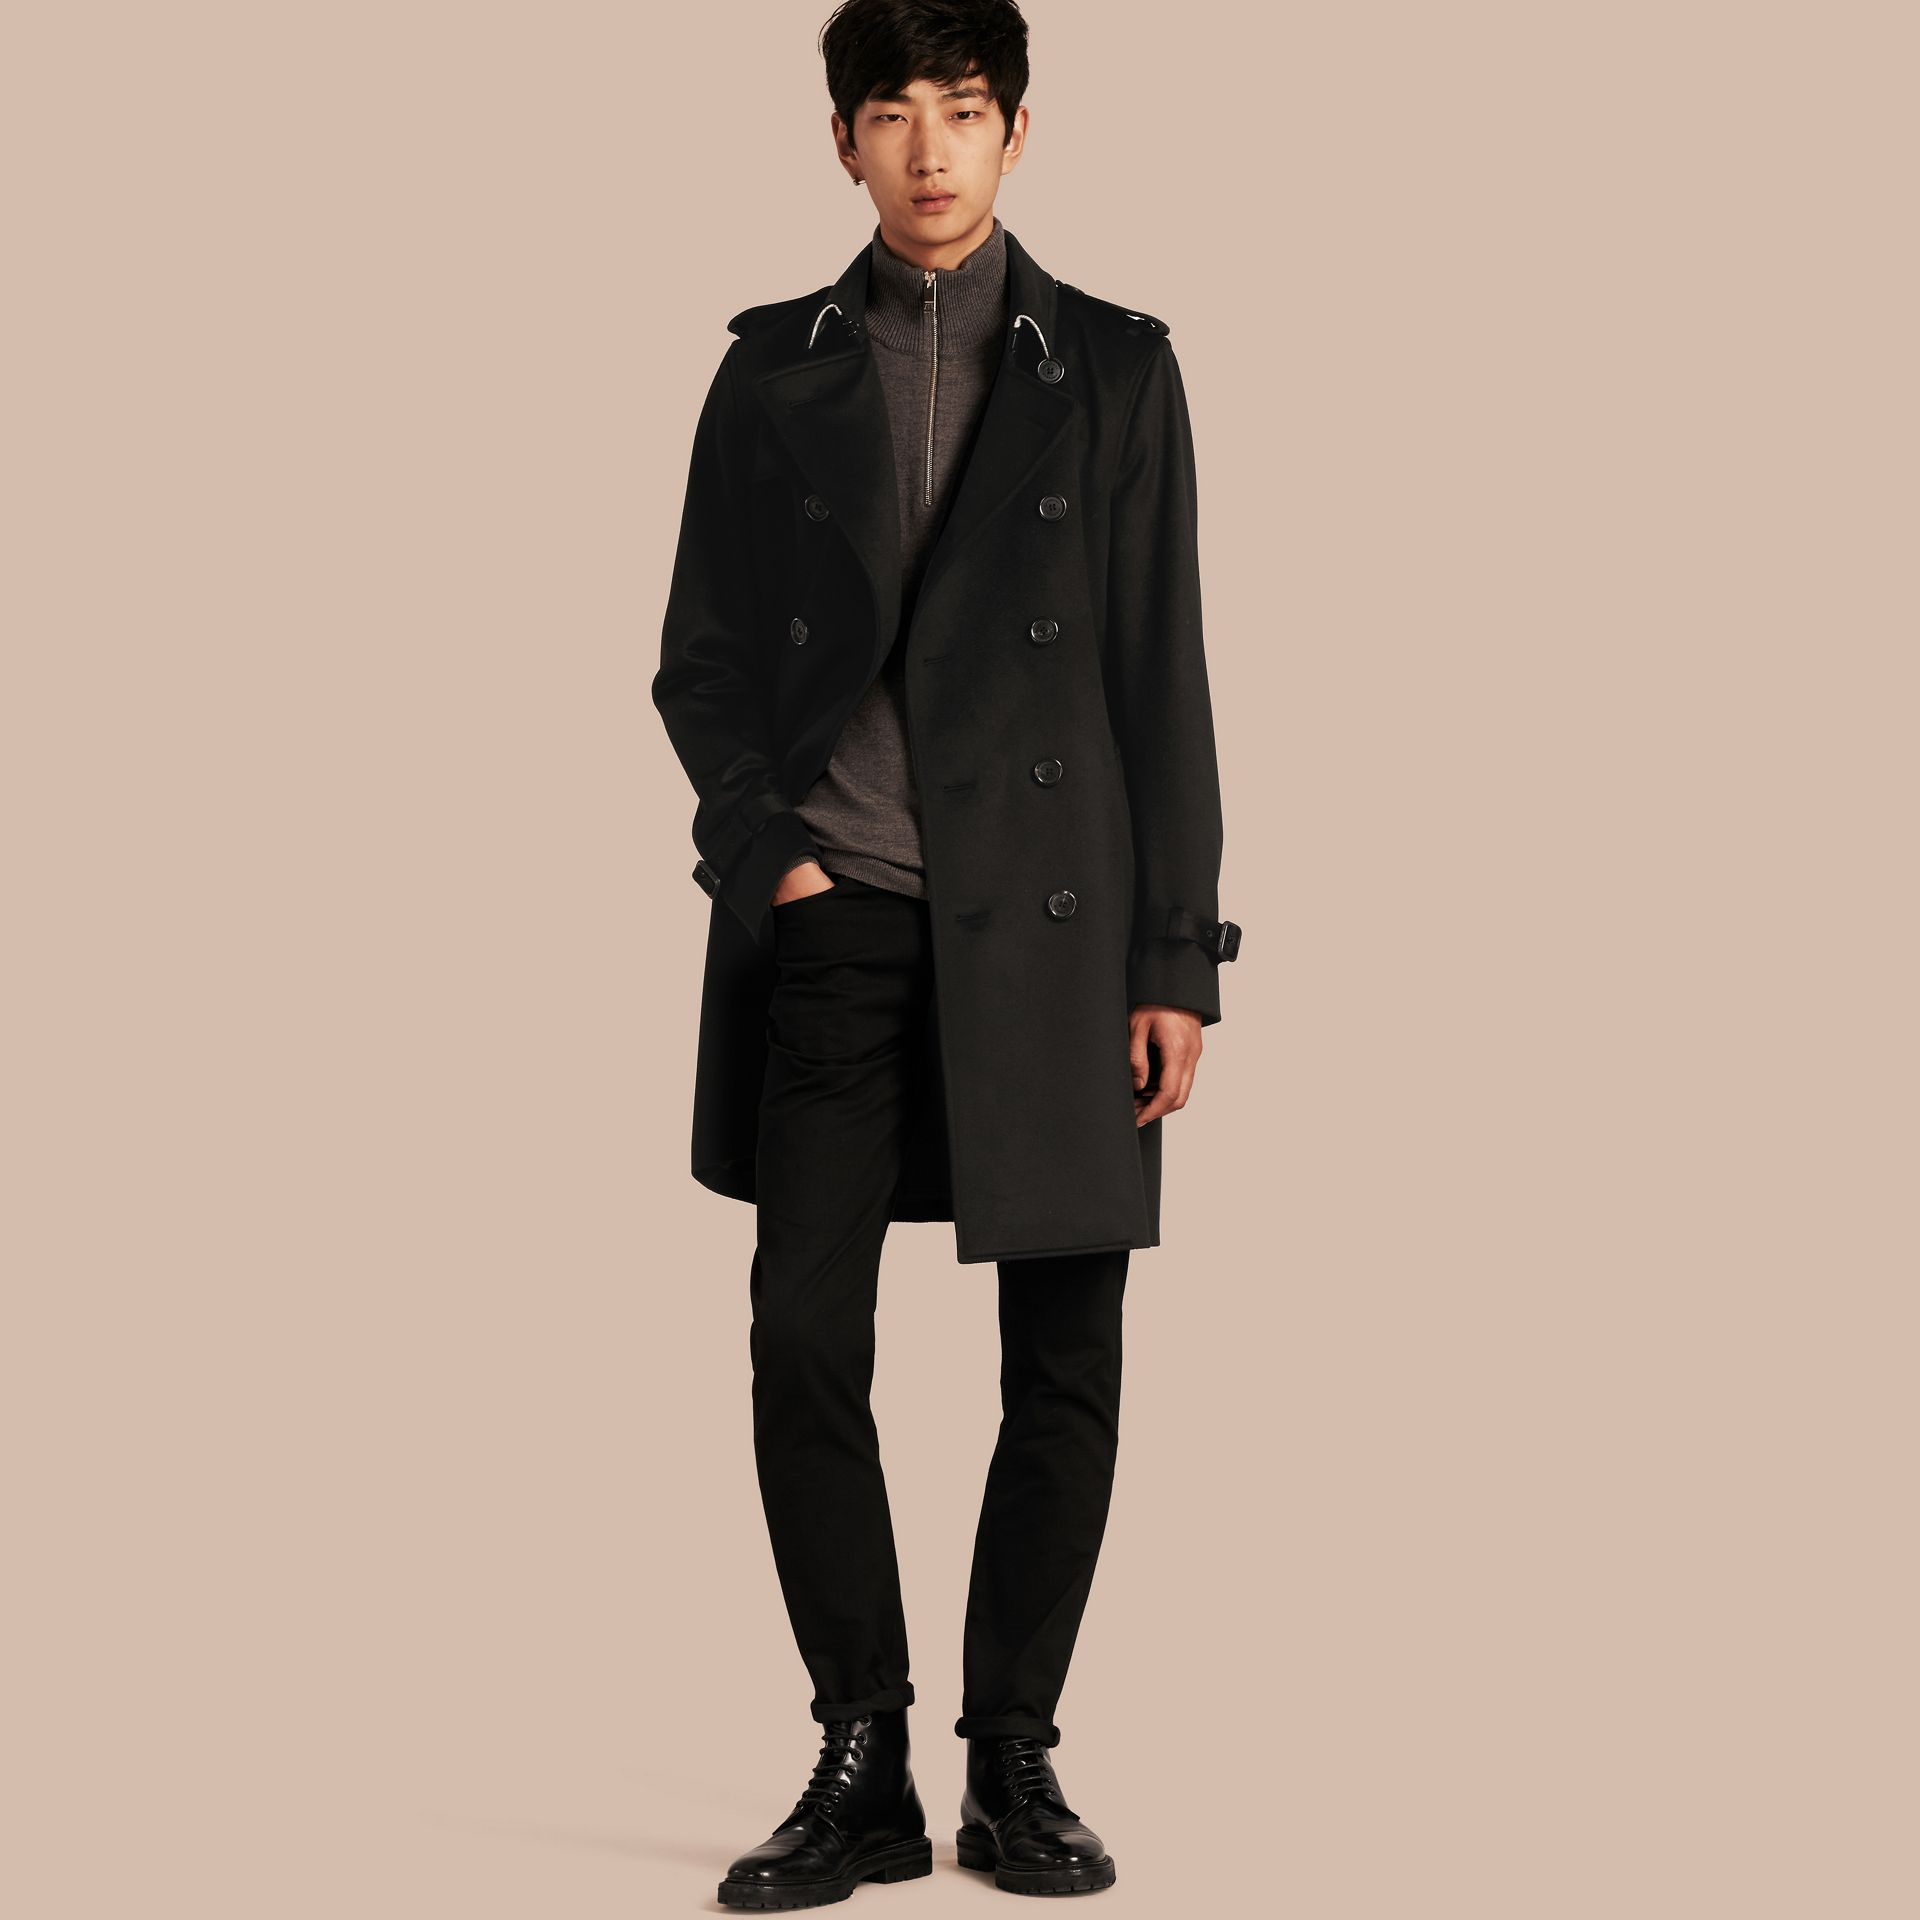 Cashmere Trench Coat in Black - Men | Burberry Australia - gallery image 8